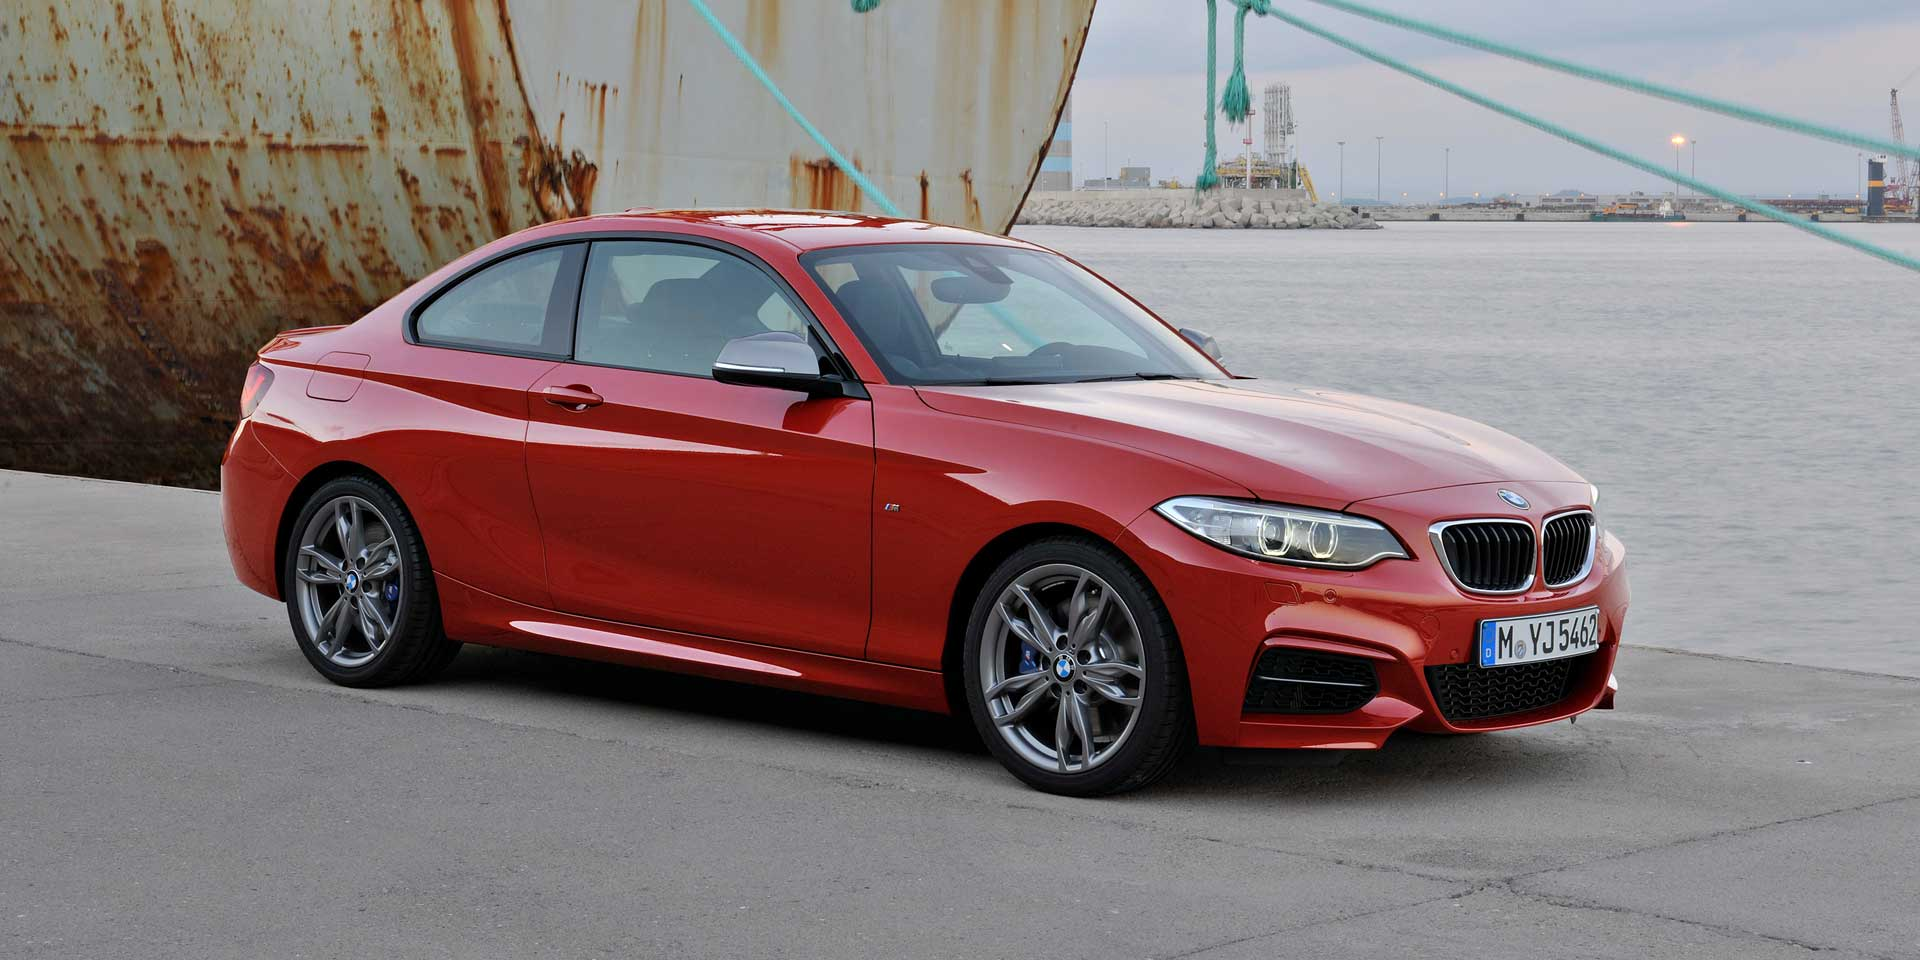 2017 Bmw 2 Series Available As A Door Hardtop Or Convertible The Is Rear All Wheel Drive Sports Coupe That Competes With